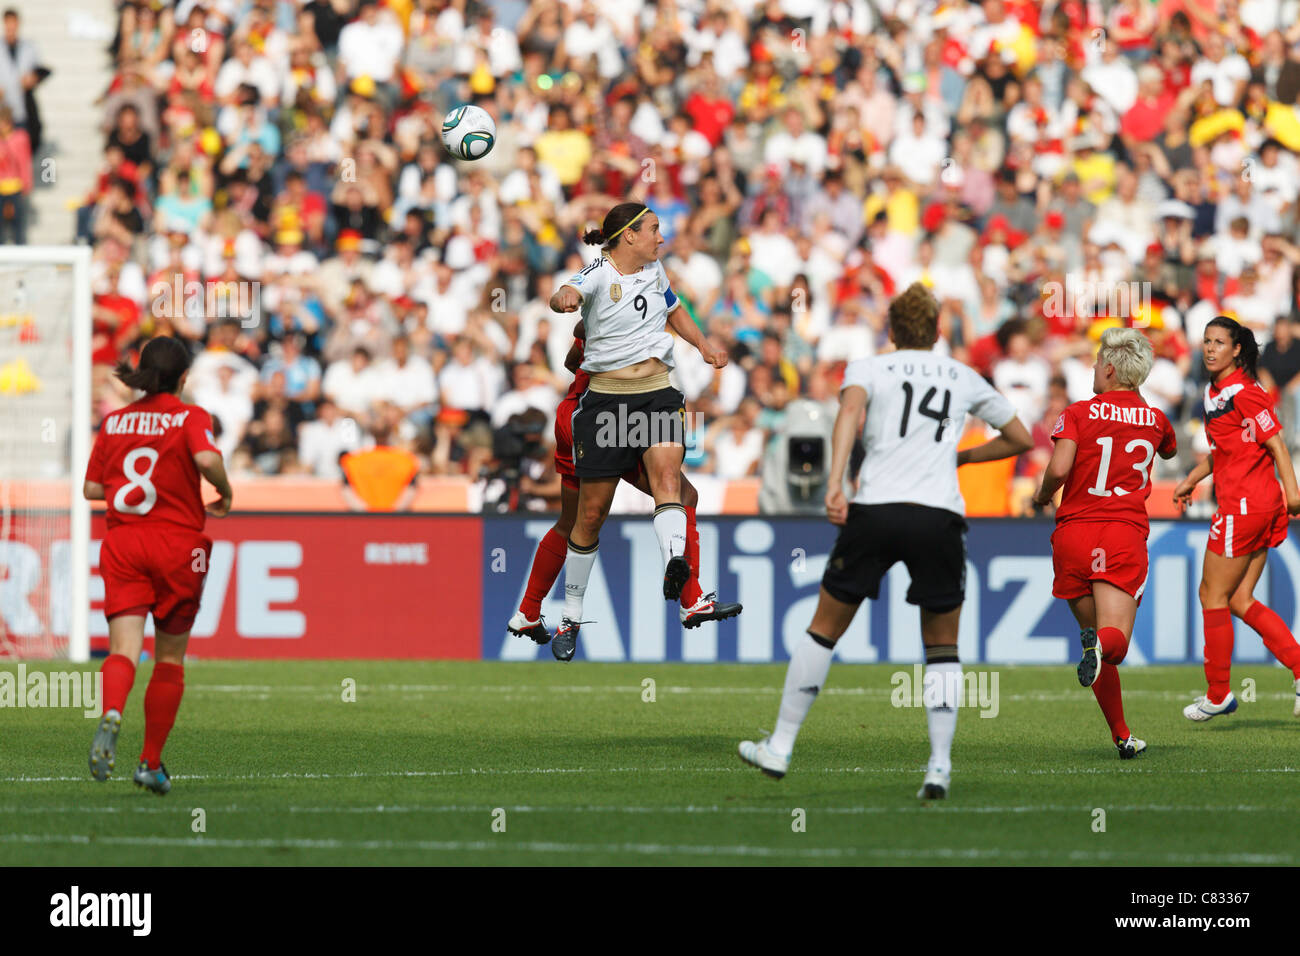 Germany team captain Birgit Prinz (9) heads the ball during the opening match of the 2011 Women's World Cup - Stock Image